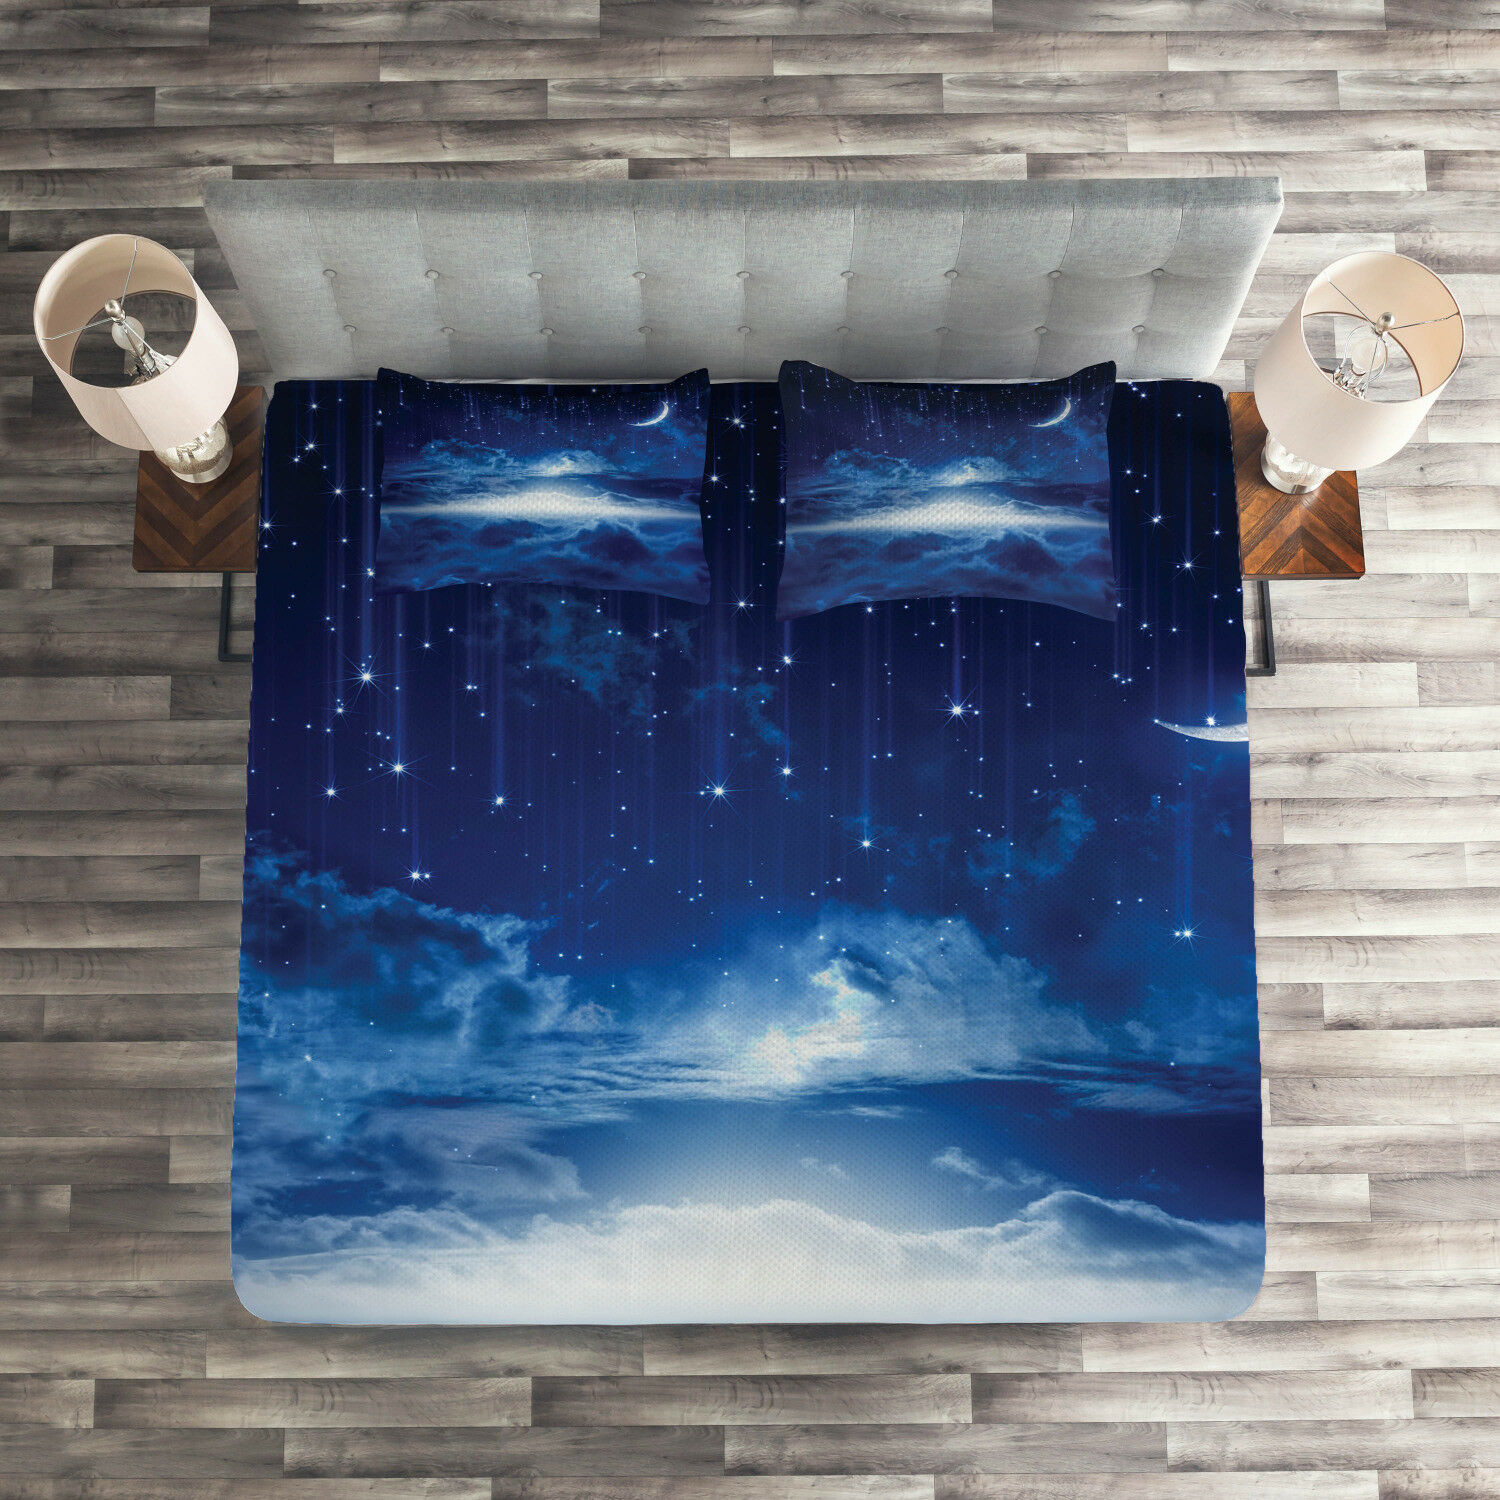 Blau Weiß Quilted Coverlet & Pillow Shams Set, Night Sky Moon Stars Print